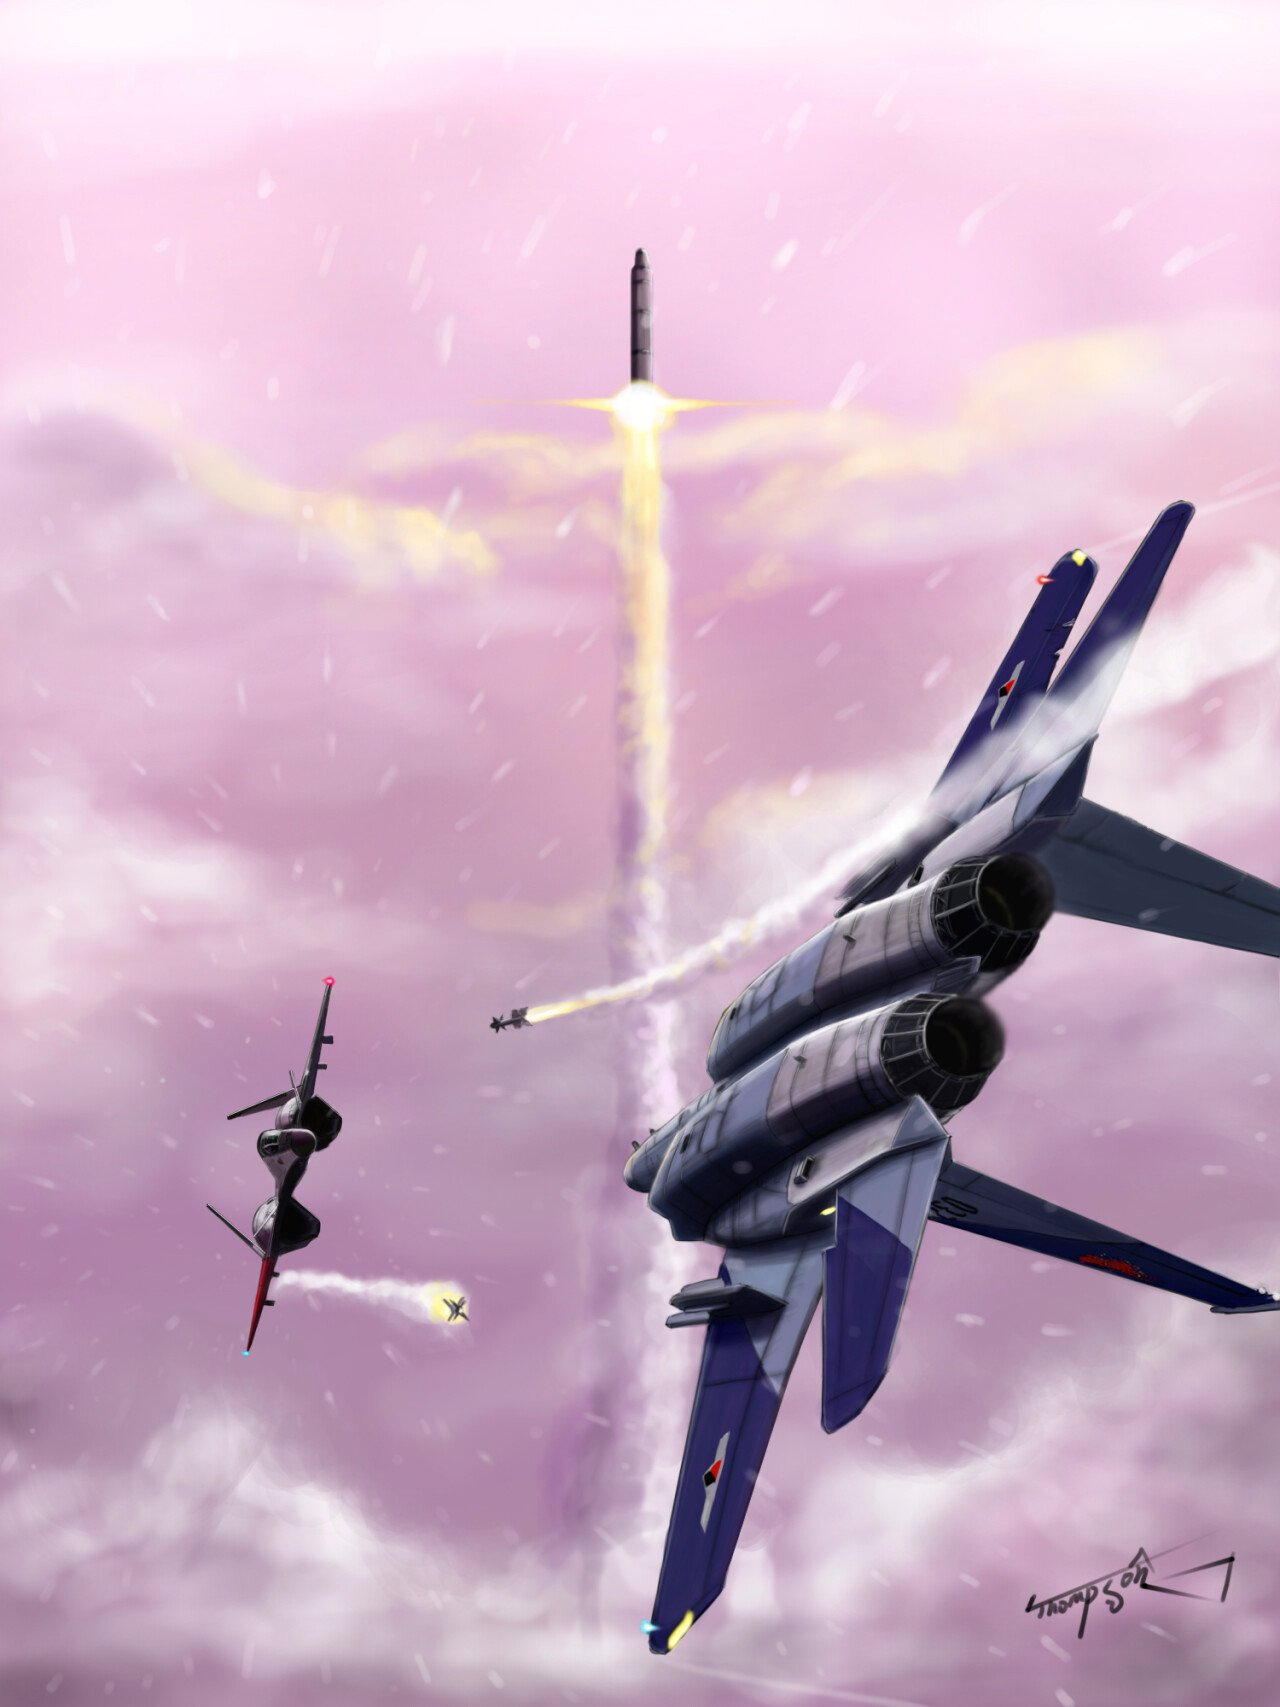 __adfx_02_morgan_cipher_and_larry_foulke_ace_combat_zero_and_etc_drawn_by_thompson__ea46567884faece429ecc6603f742765.jpg 에이스 컴뱃 세계관 이야기 - 6. 벨카 전쟁(完)